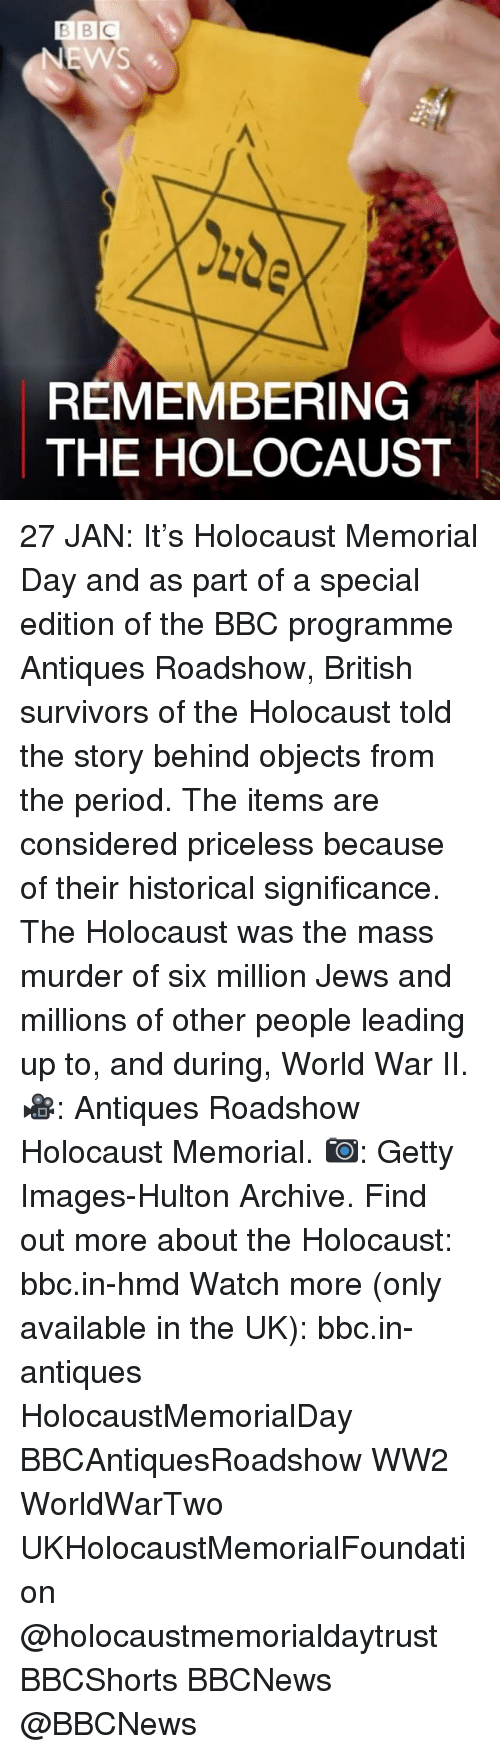 antiquated: BBC  NEWS  REMEMBERING  THE HOLOCAUST 27 JAN: It's Holocaust Memorial Day and as part of a special edition of the BBC programme Antiques Roadshow, British survivors of the Holocaust told the story behind objects from the period. The items are considered priceless because of their historical significance. The Holocaust was the mass murder of six million Jews and millions of other people leading up to, and during, World War II. 🎥: Antiques Roadshow Holocaust Memorial. 📷: Getty Images-Hulton Archive. Find out more about the Holocaust: bbc.in-hmd Watch more (only available in the UK): bbc.in-antiques HolocaustMemorialDay BBCAntiquesRoadshow WW2 WorldWarTwo UKHolocaustMemorialFoundation @holocaustmemorialdaytrust BBCShorts BBCNews @BBCNews